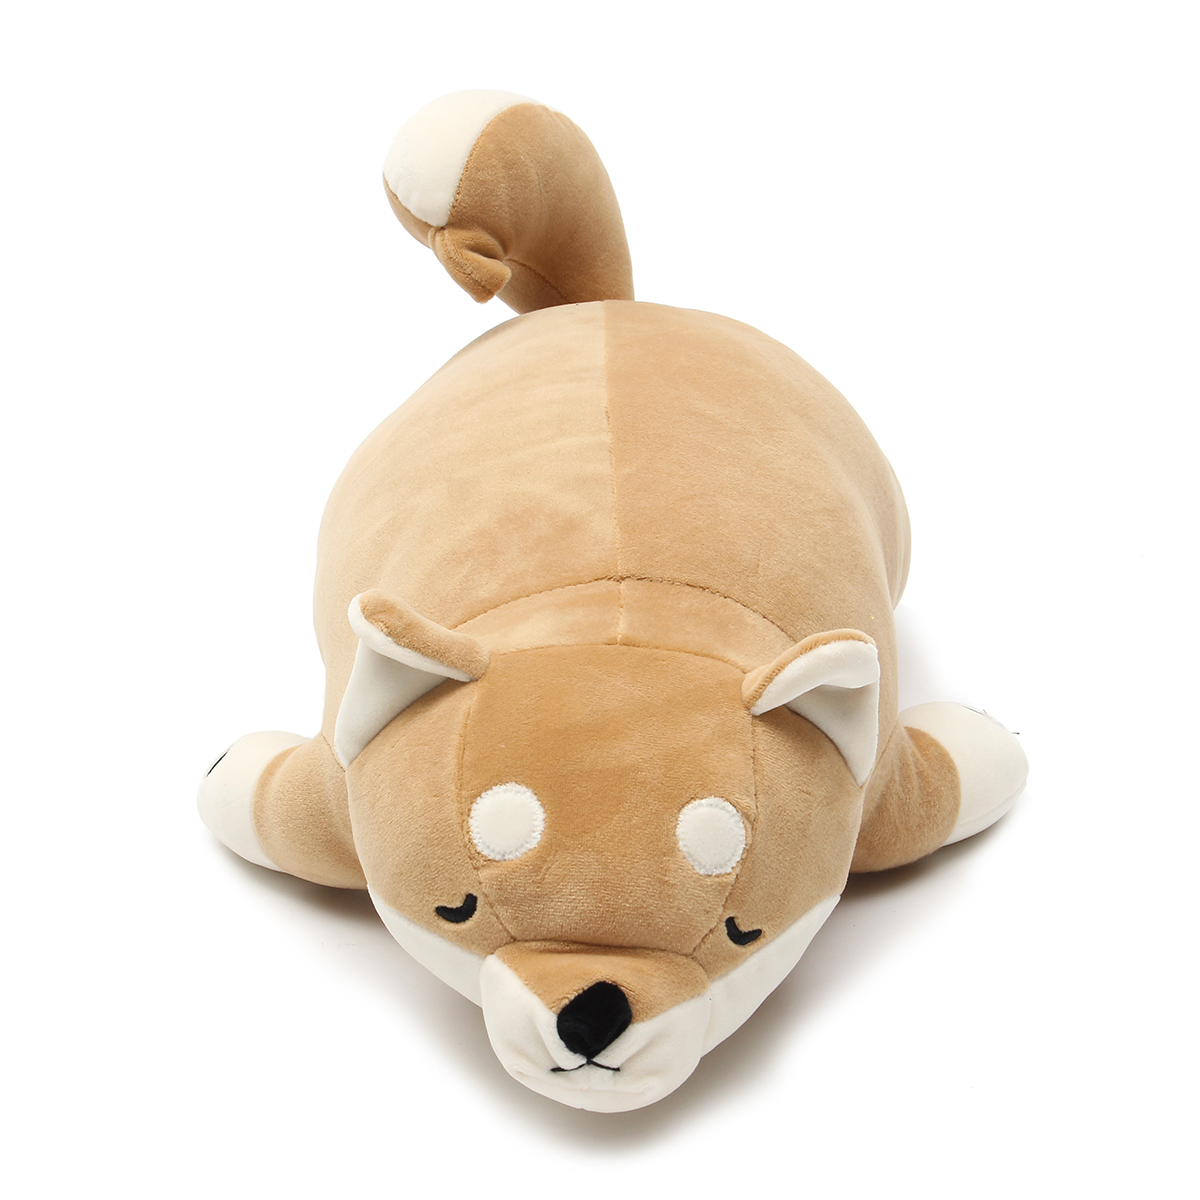 50cm Japanese Anime Shiba Inu Dog Stuffed Plush Toy Dol